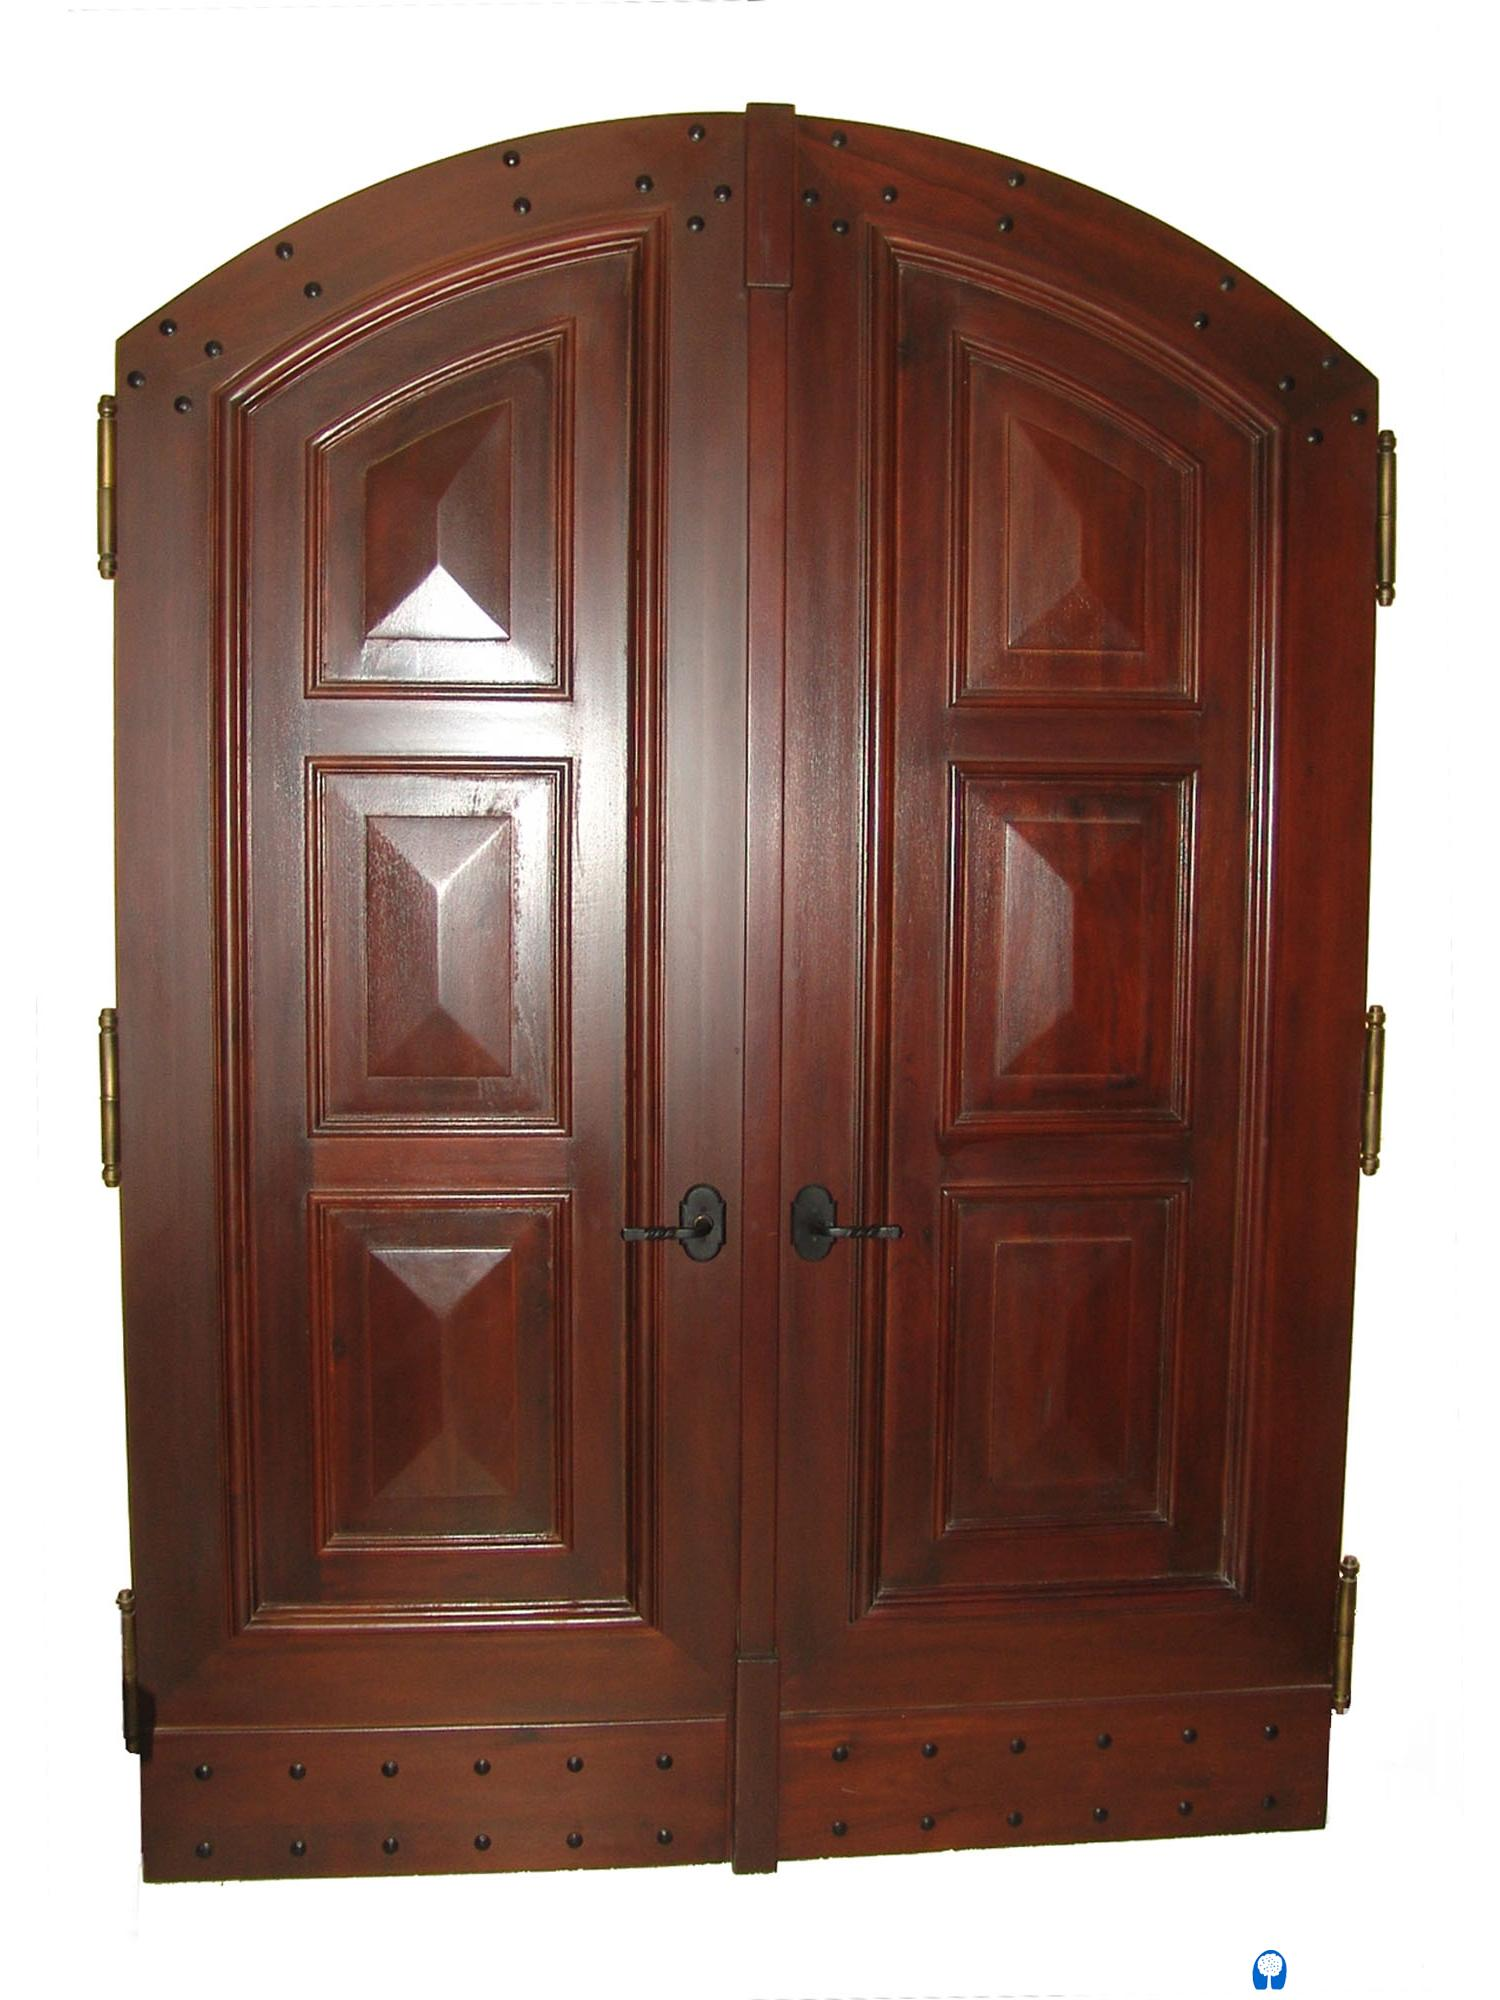 Davinci mahogany interior doors sabana windows for Mahogany interior doors